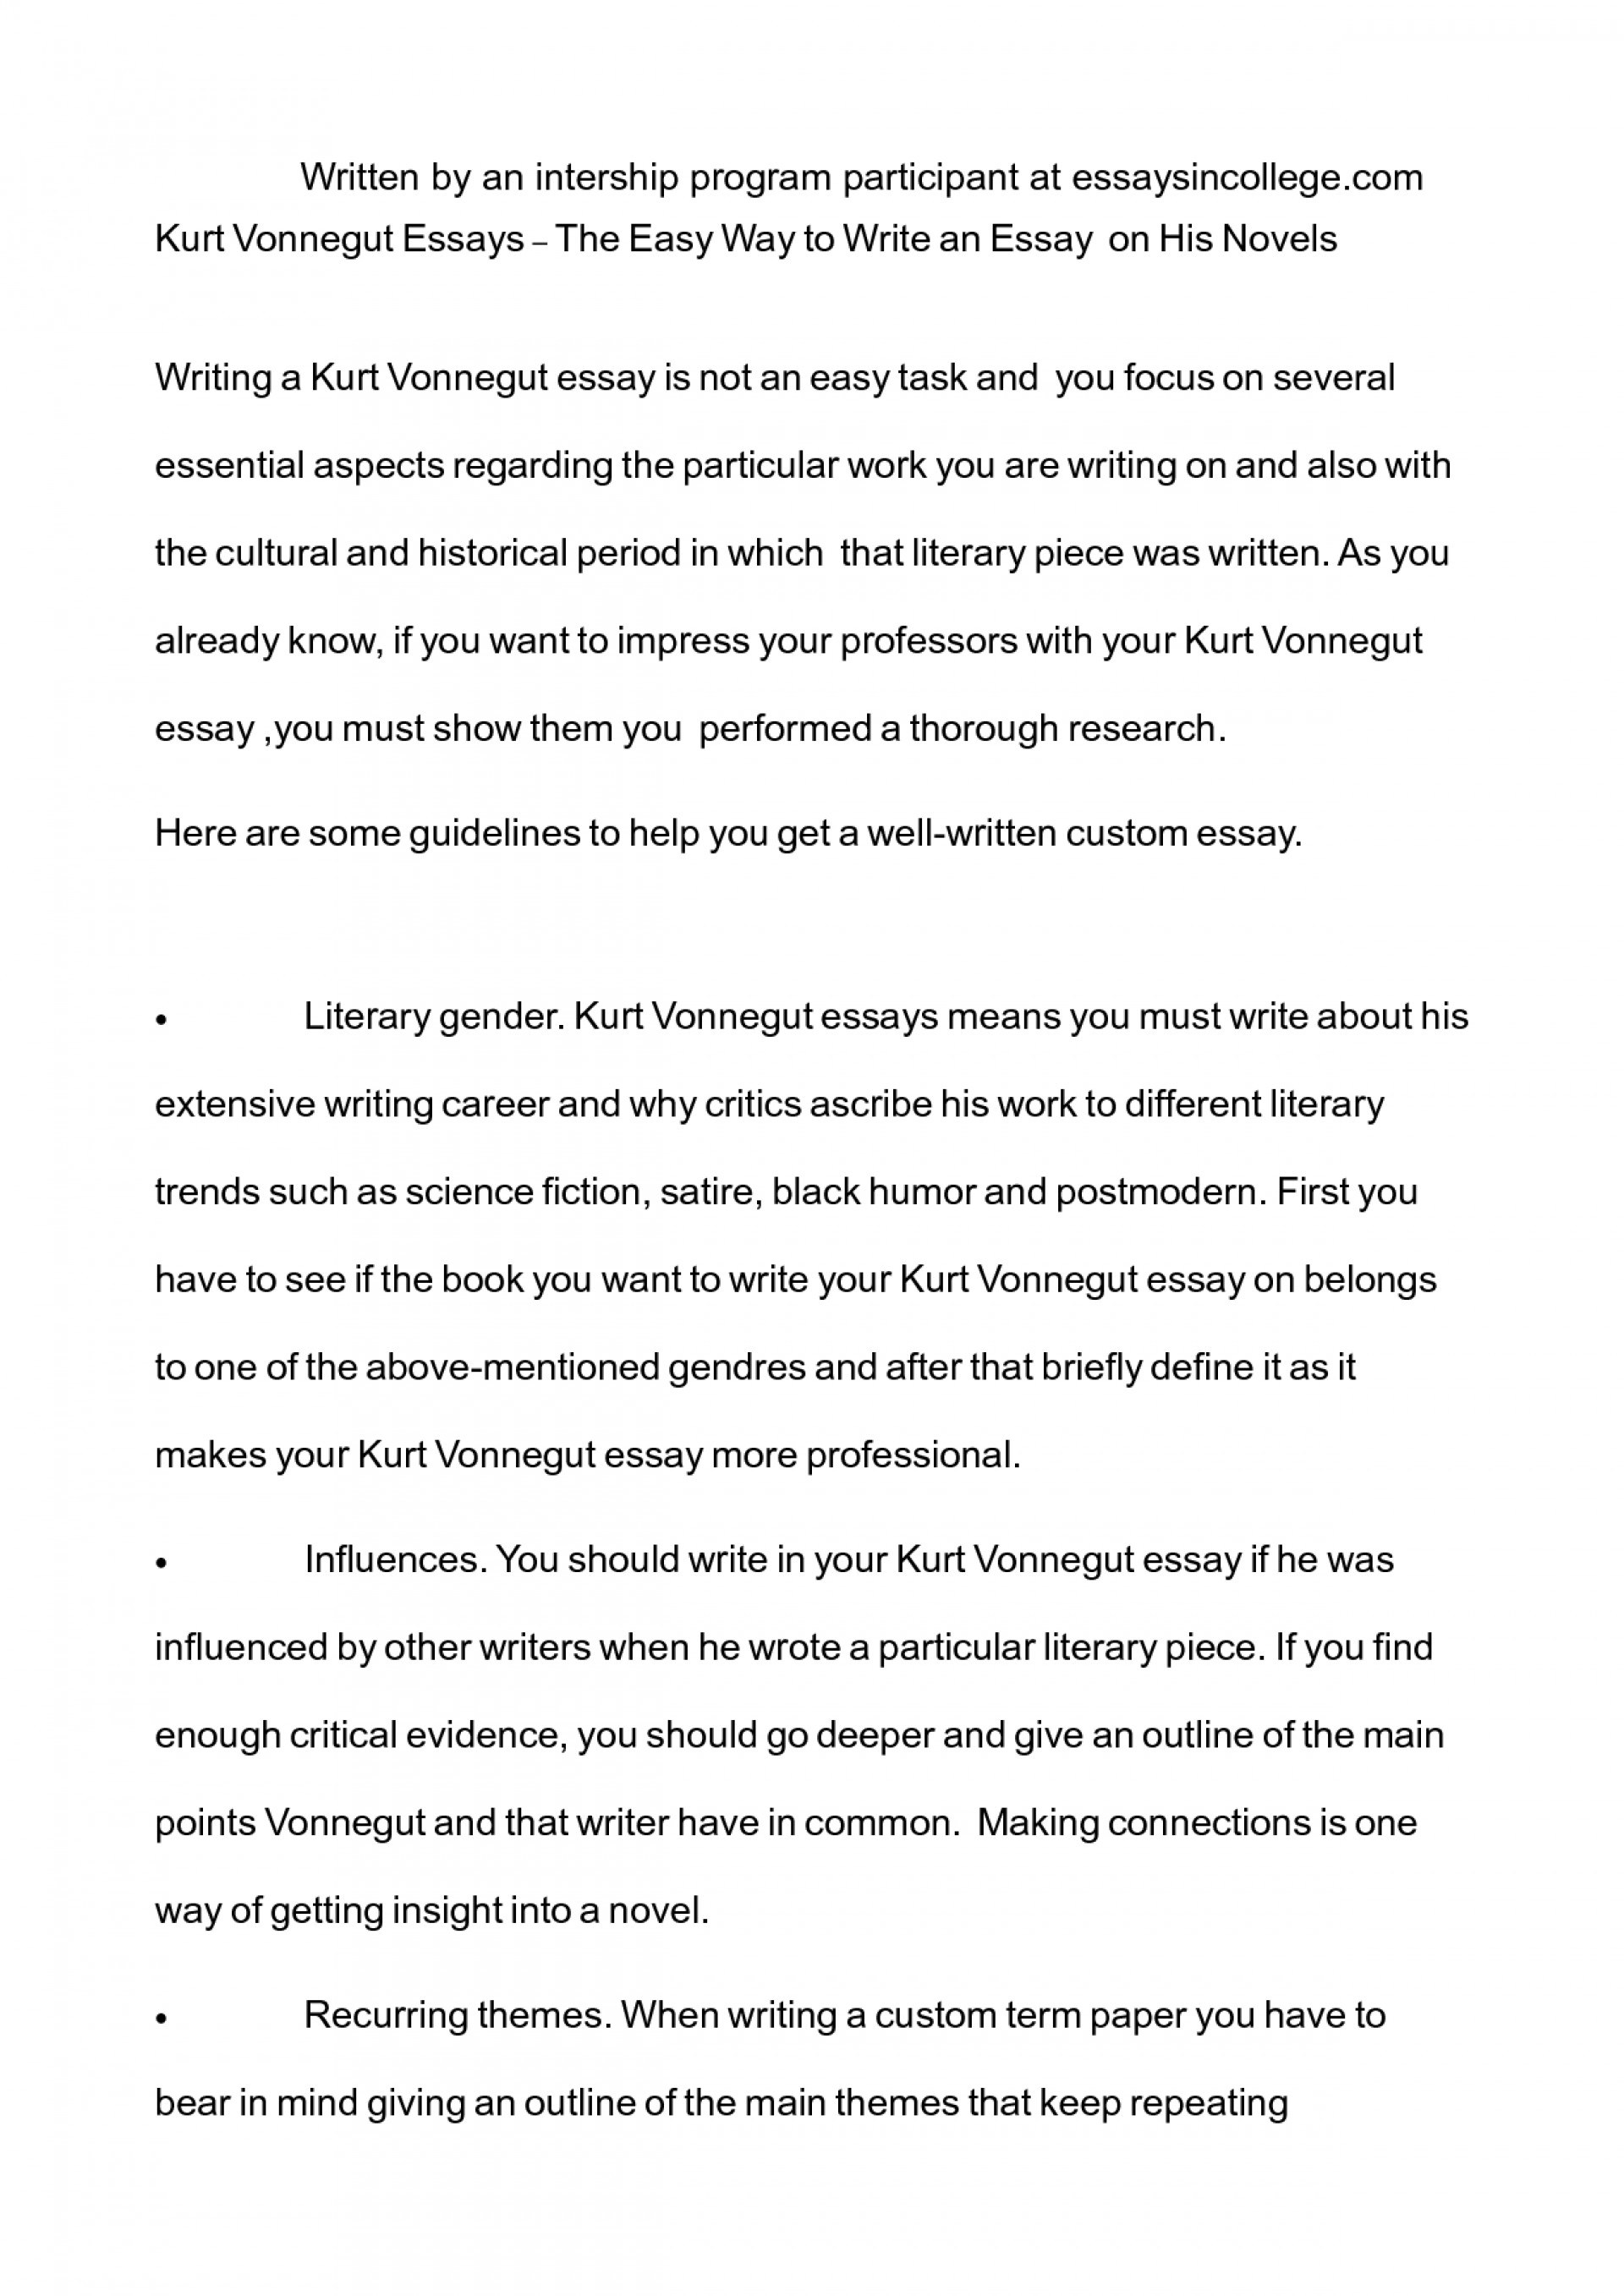 001 Easy Essay Writing Ujolpknqnj Marvelous Examples Ielts Tips Task 2 Topics 1920